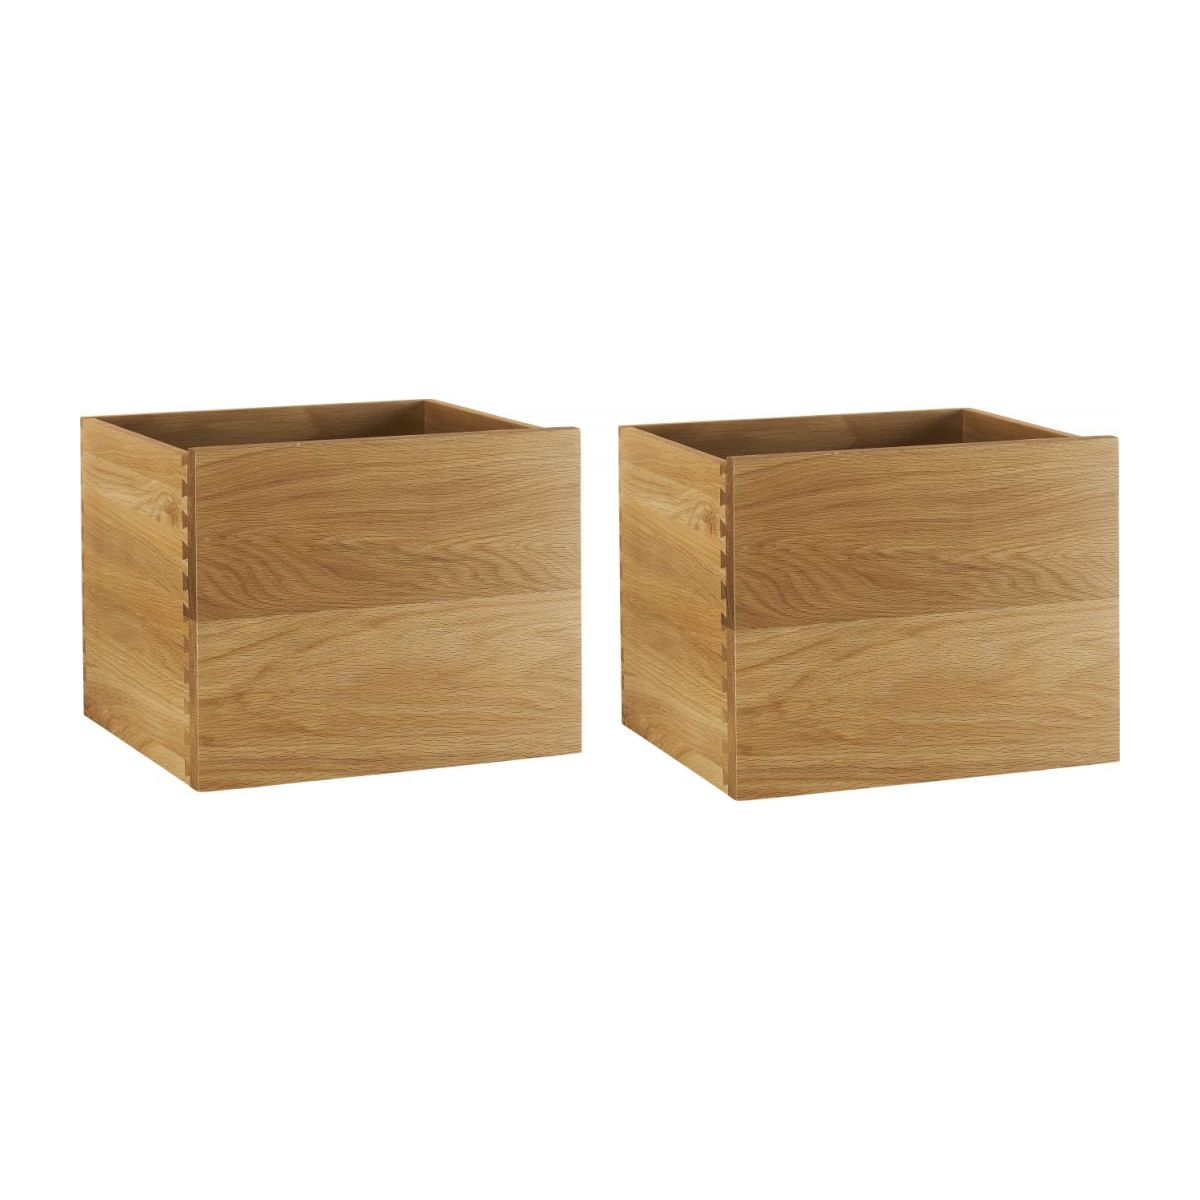 2 oak drawers for mirror n°1